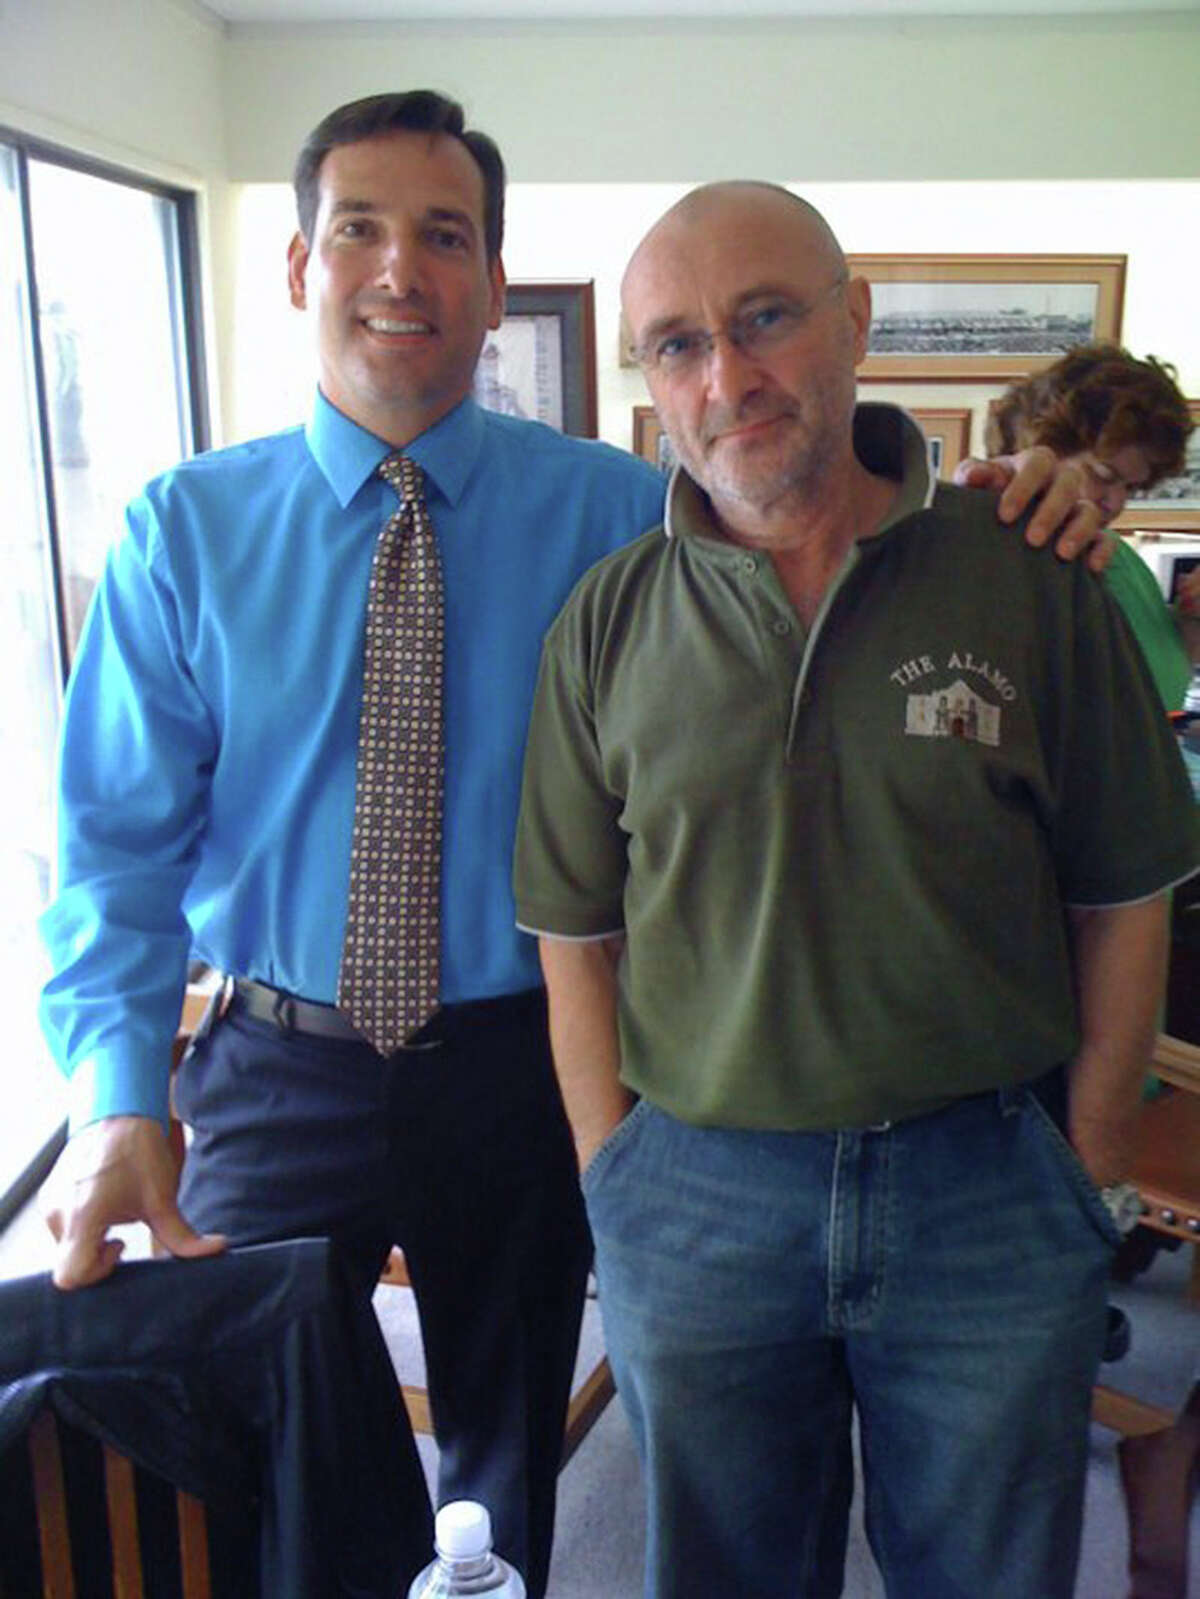 The Alamo's director of marketing and public relations Tony Caridi poses with singer and Alamo enthusiast Phil Collins in 2010. Caridi has been fired by the Daughters of the Republic of Texas for alleged inappropriate use of work computers and other employee resources. Caridi, who was the face of the Alamo during controversies that led to a new law providing state oversight of the Texas shrine, was fired on Friday and has retained a lawyer. COURTESY PHOTO